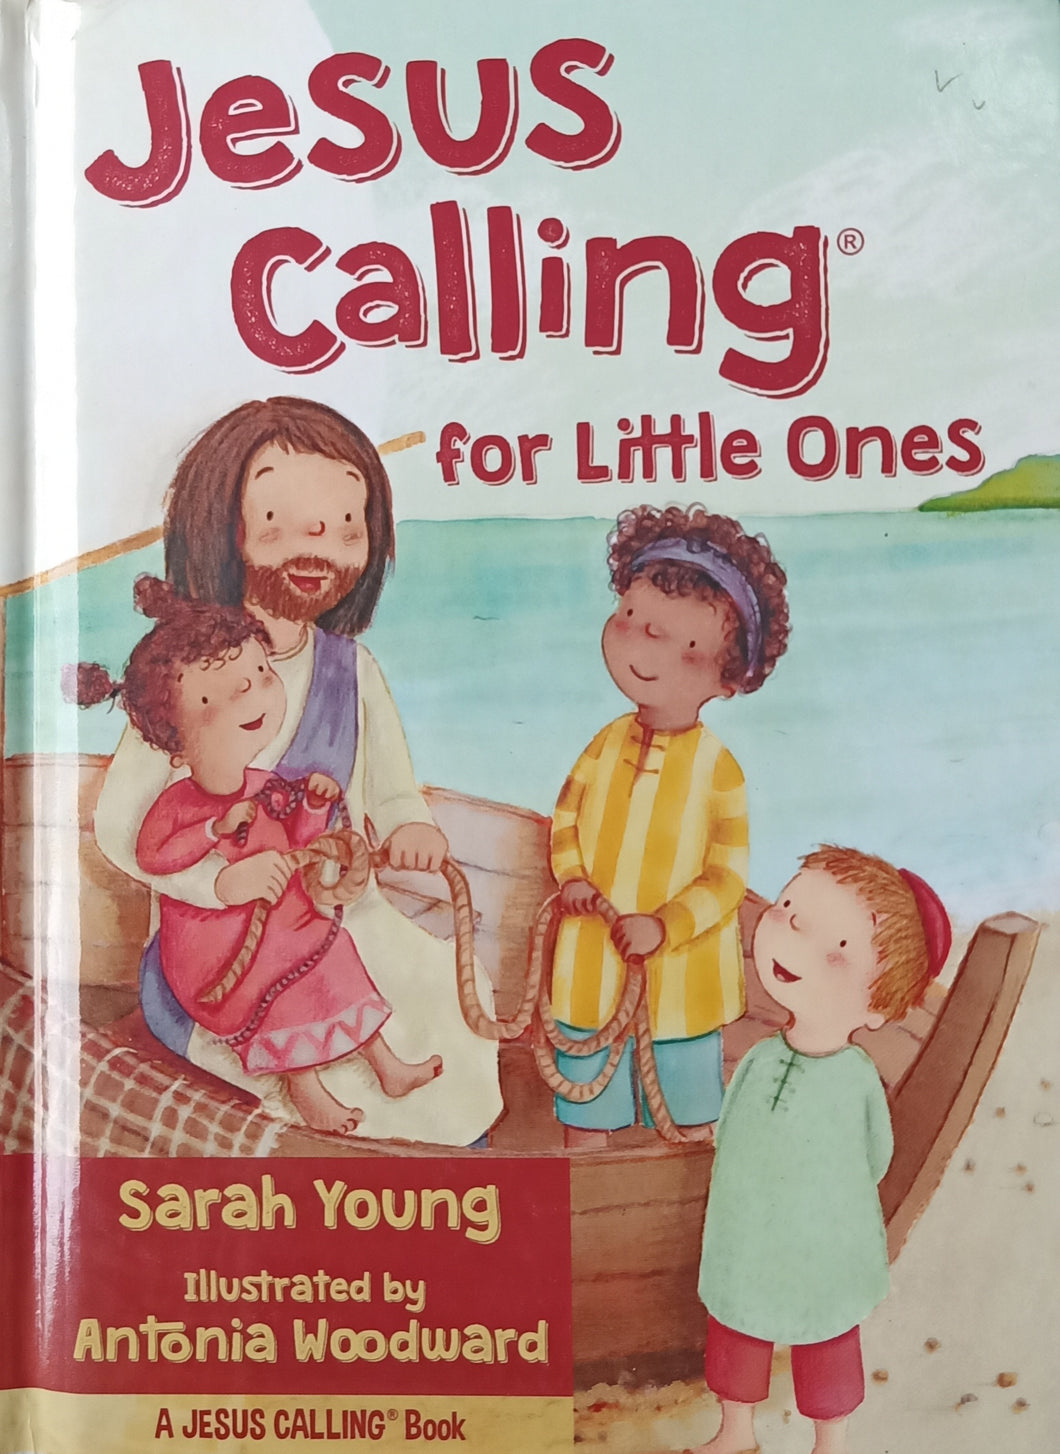 Jesus Calling For Little O es by Sarah Young